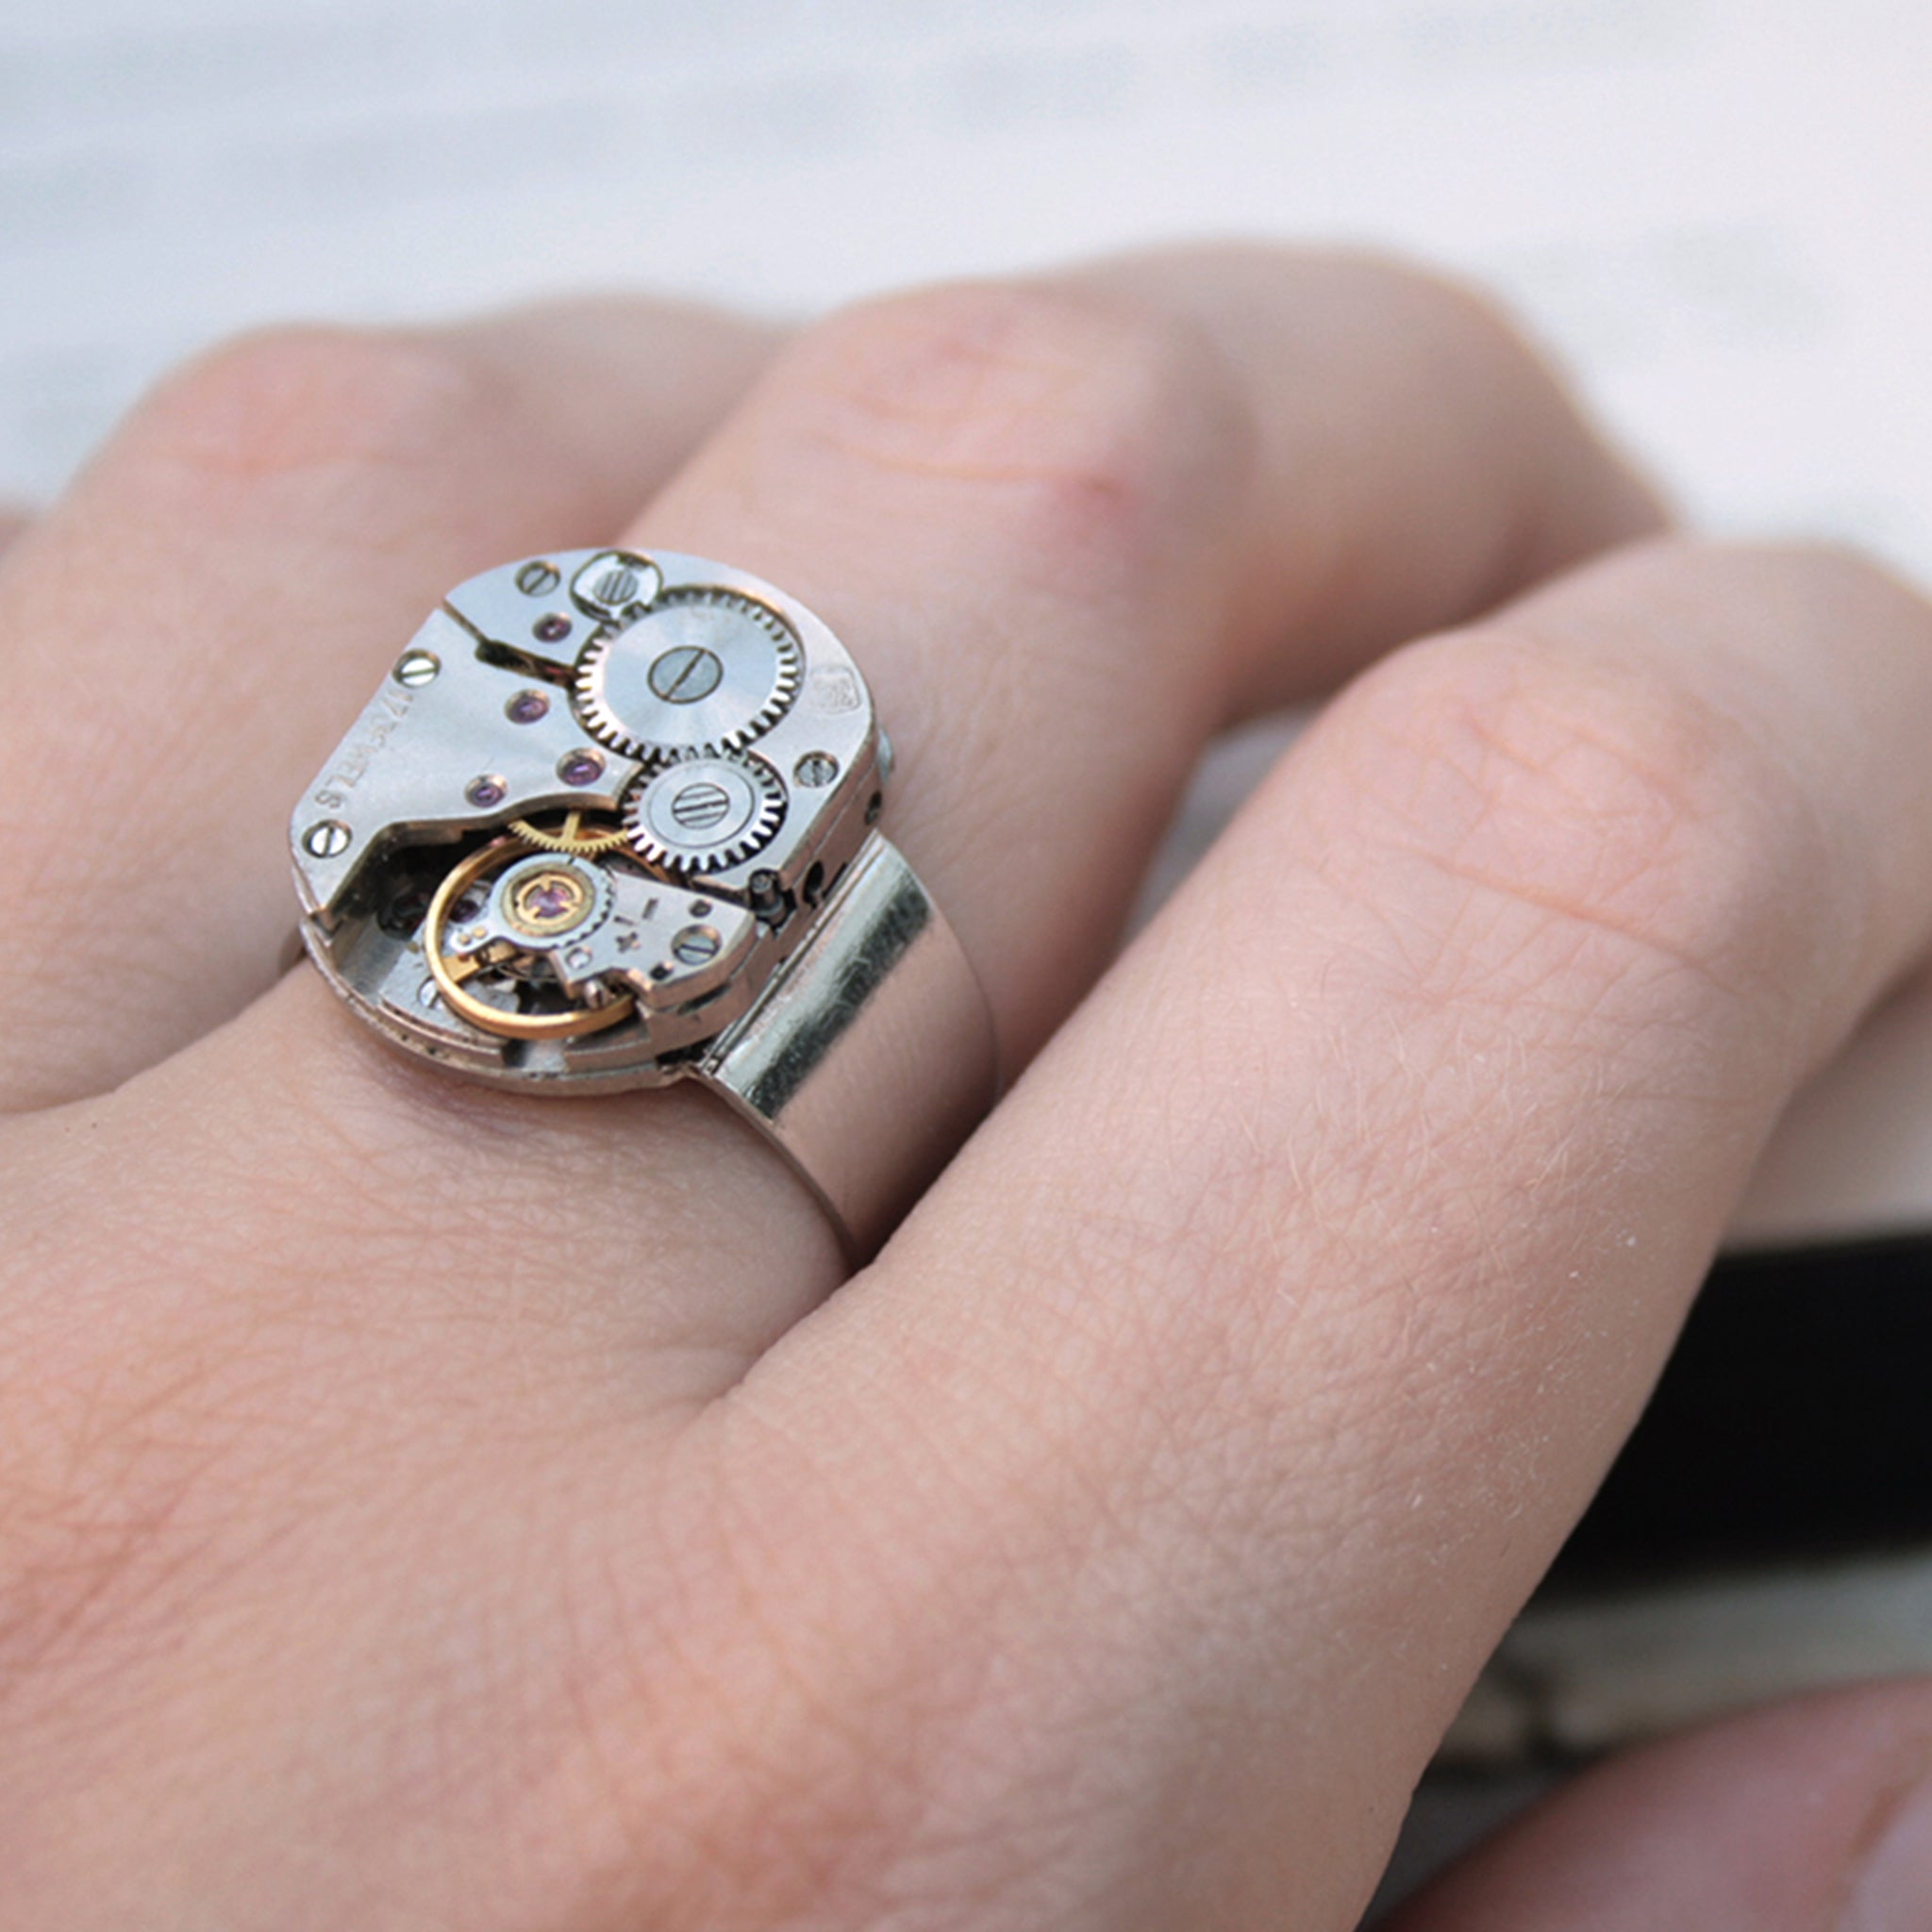 Mens Pinky Ring in Steampunk Style made of watch mechanism worn on hand